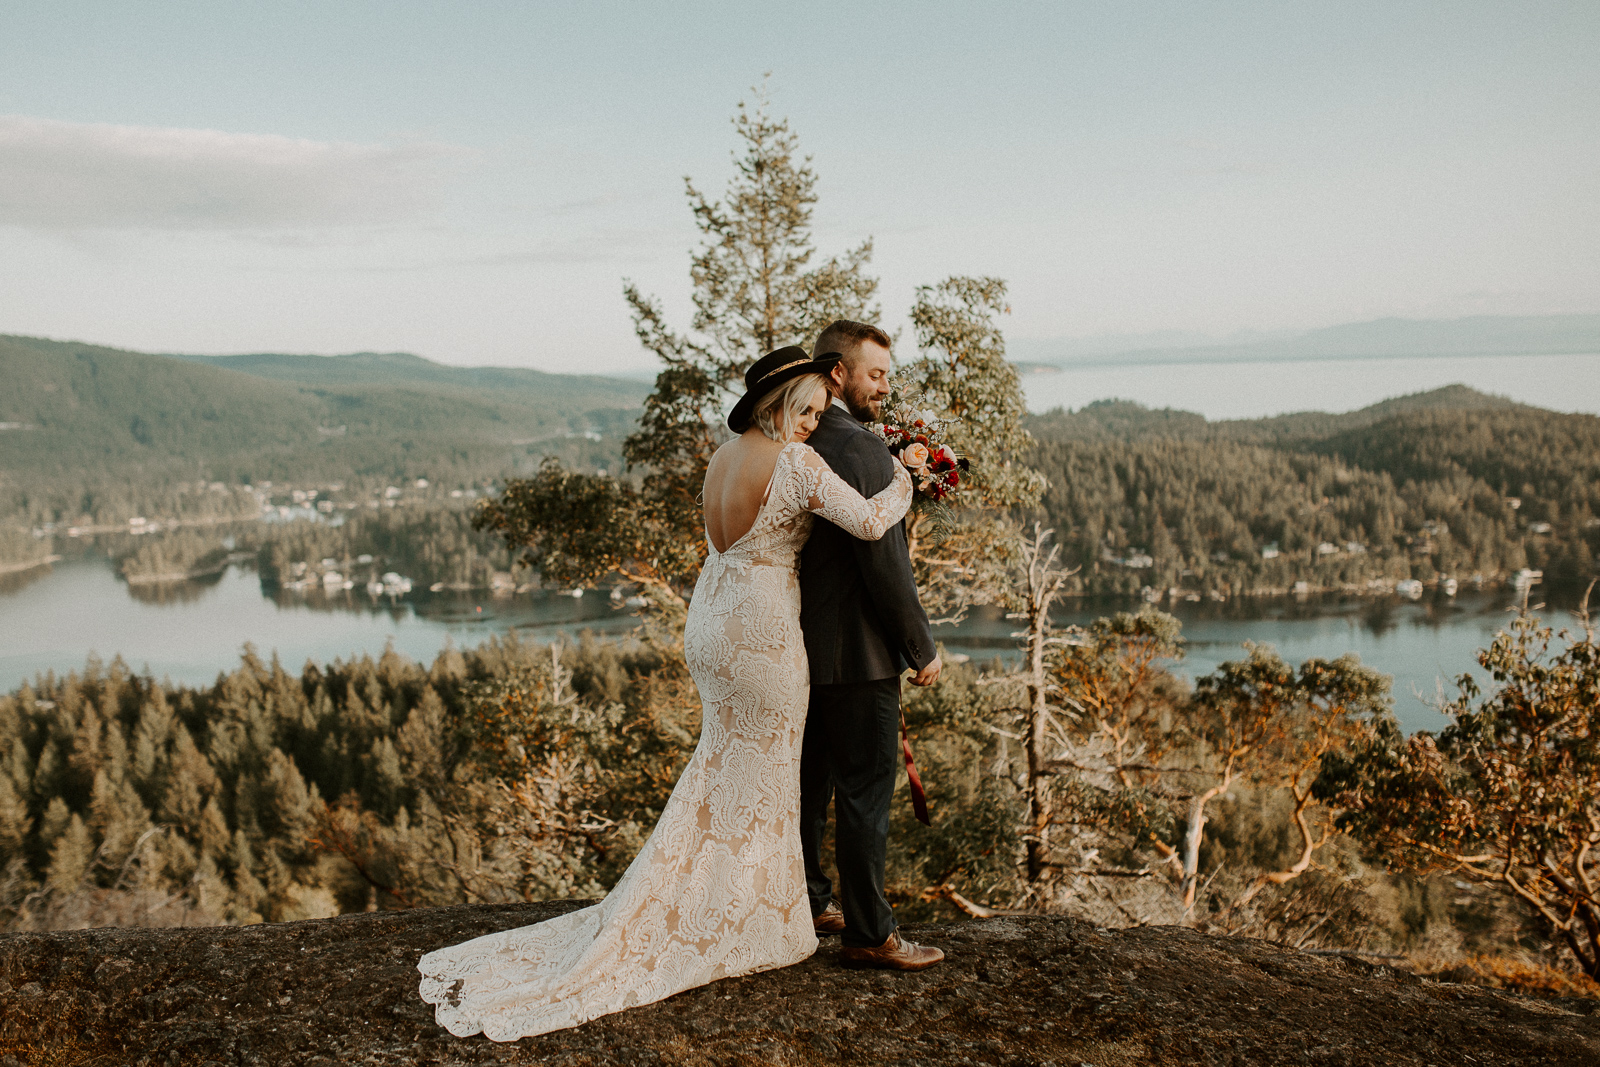 Luke Lambertson Photo_BritishColumbia_Canada_AdventurousCouple_Elopement_IMG-7890.jpg